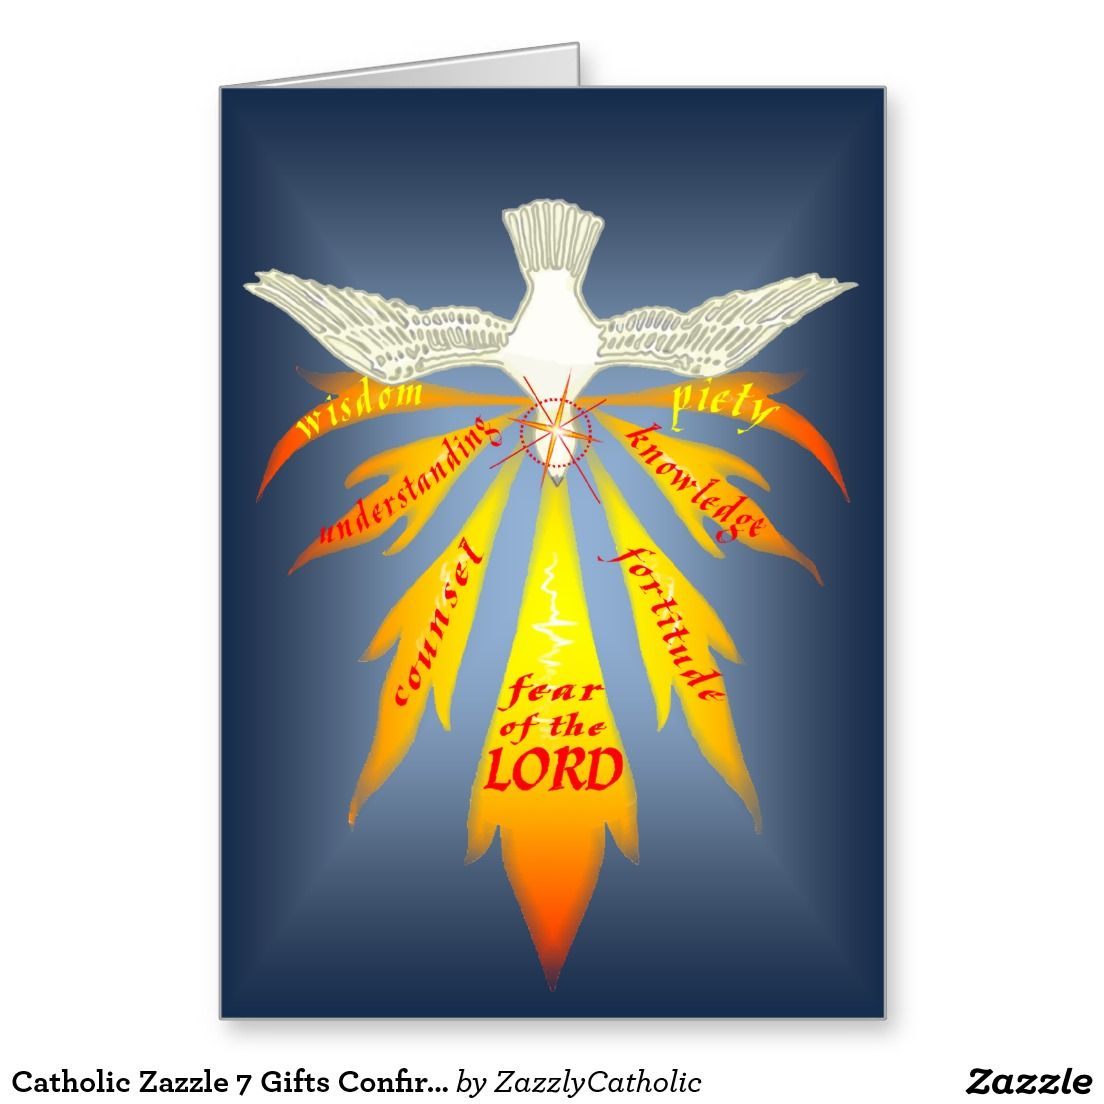 Catholic zazzle 7 gifts confirmation card confirmation